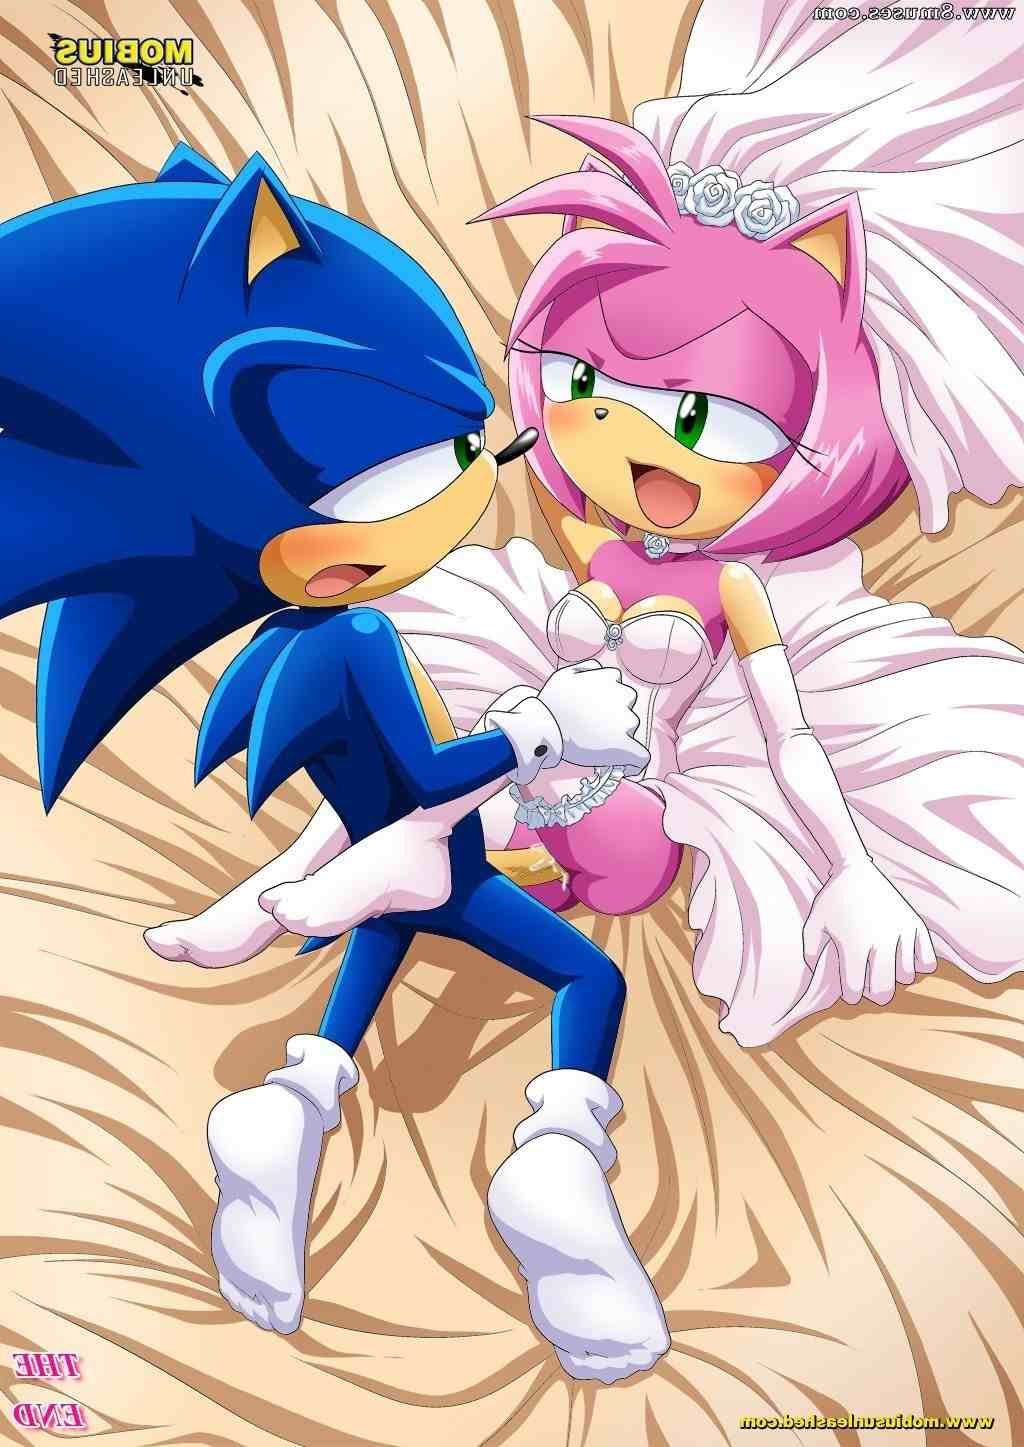 Mobiusunleashed-Comics/Sonic-and-Amy-with-a-TWIST Sonic_and_Amy_with_a_TWIST__8muses_-_Sex_and_Porn_Comics_26.jpg